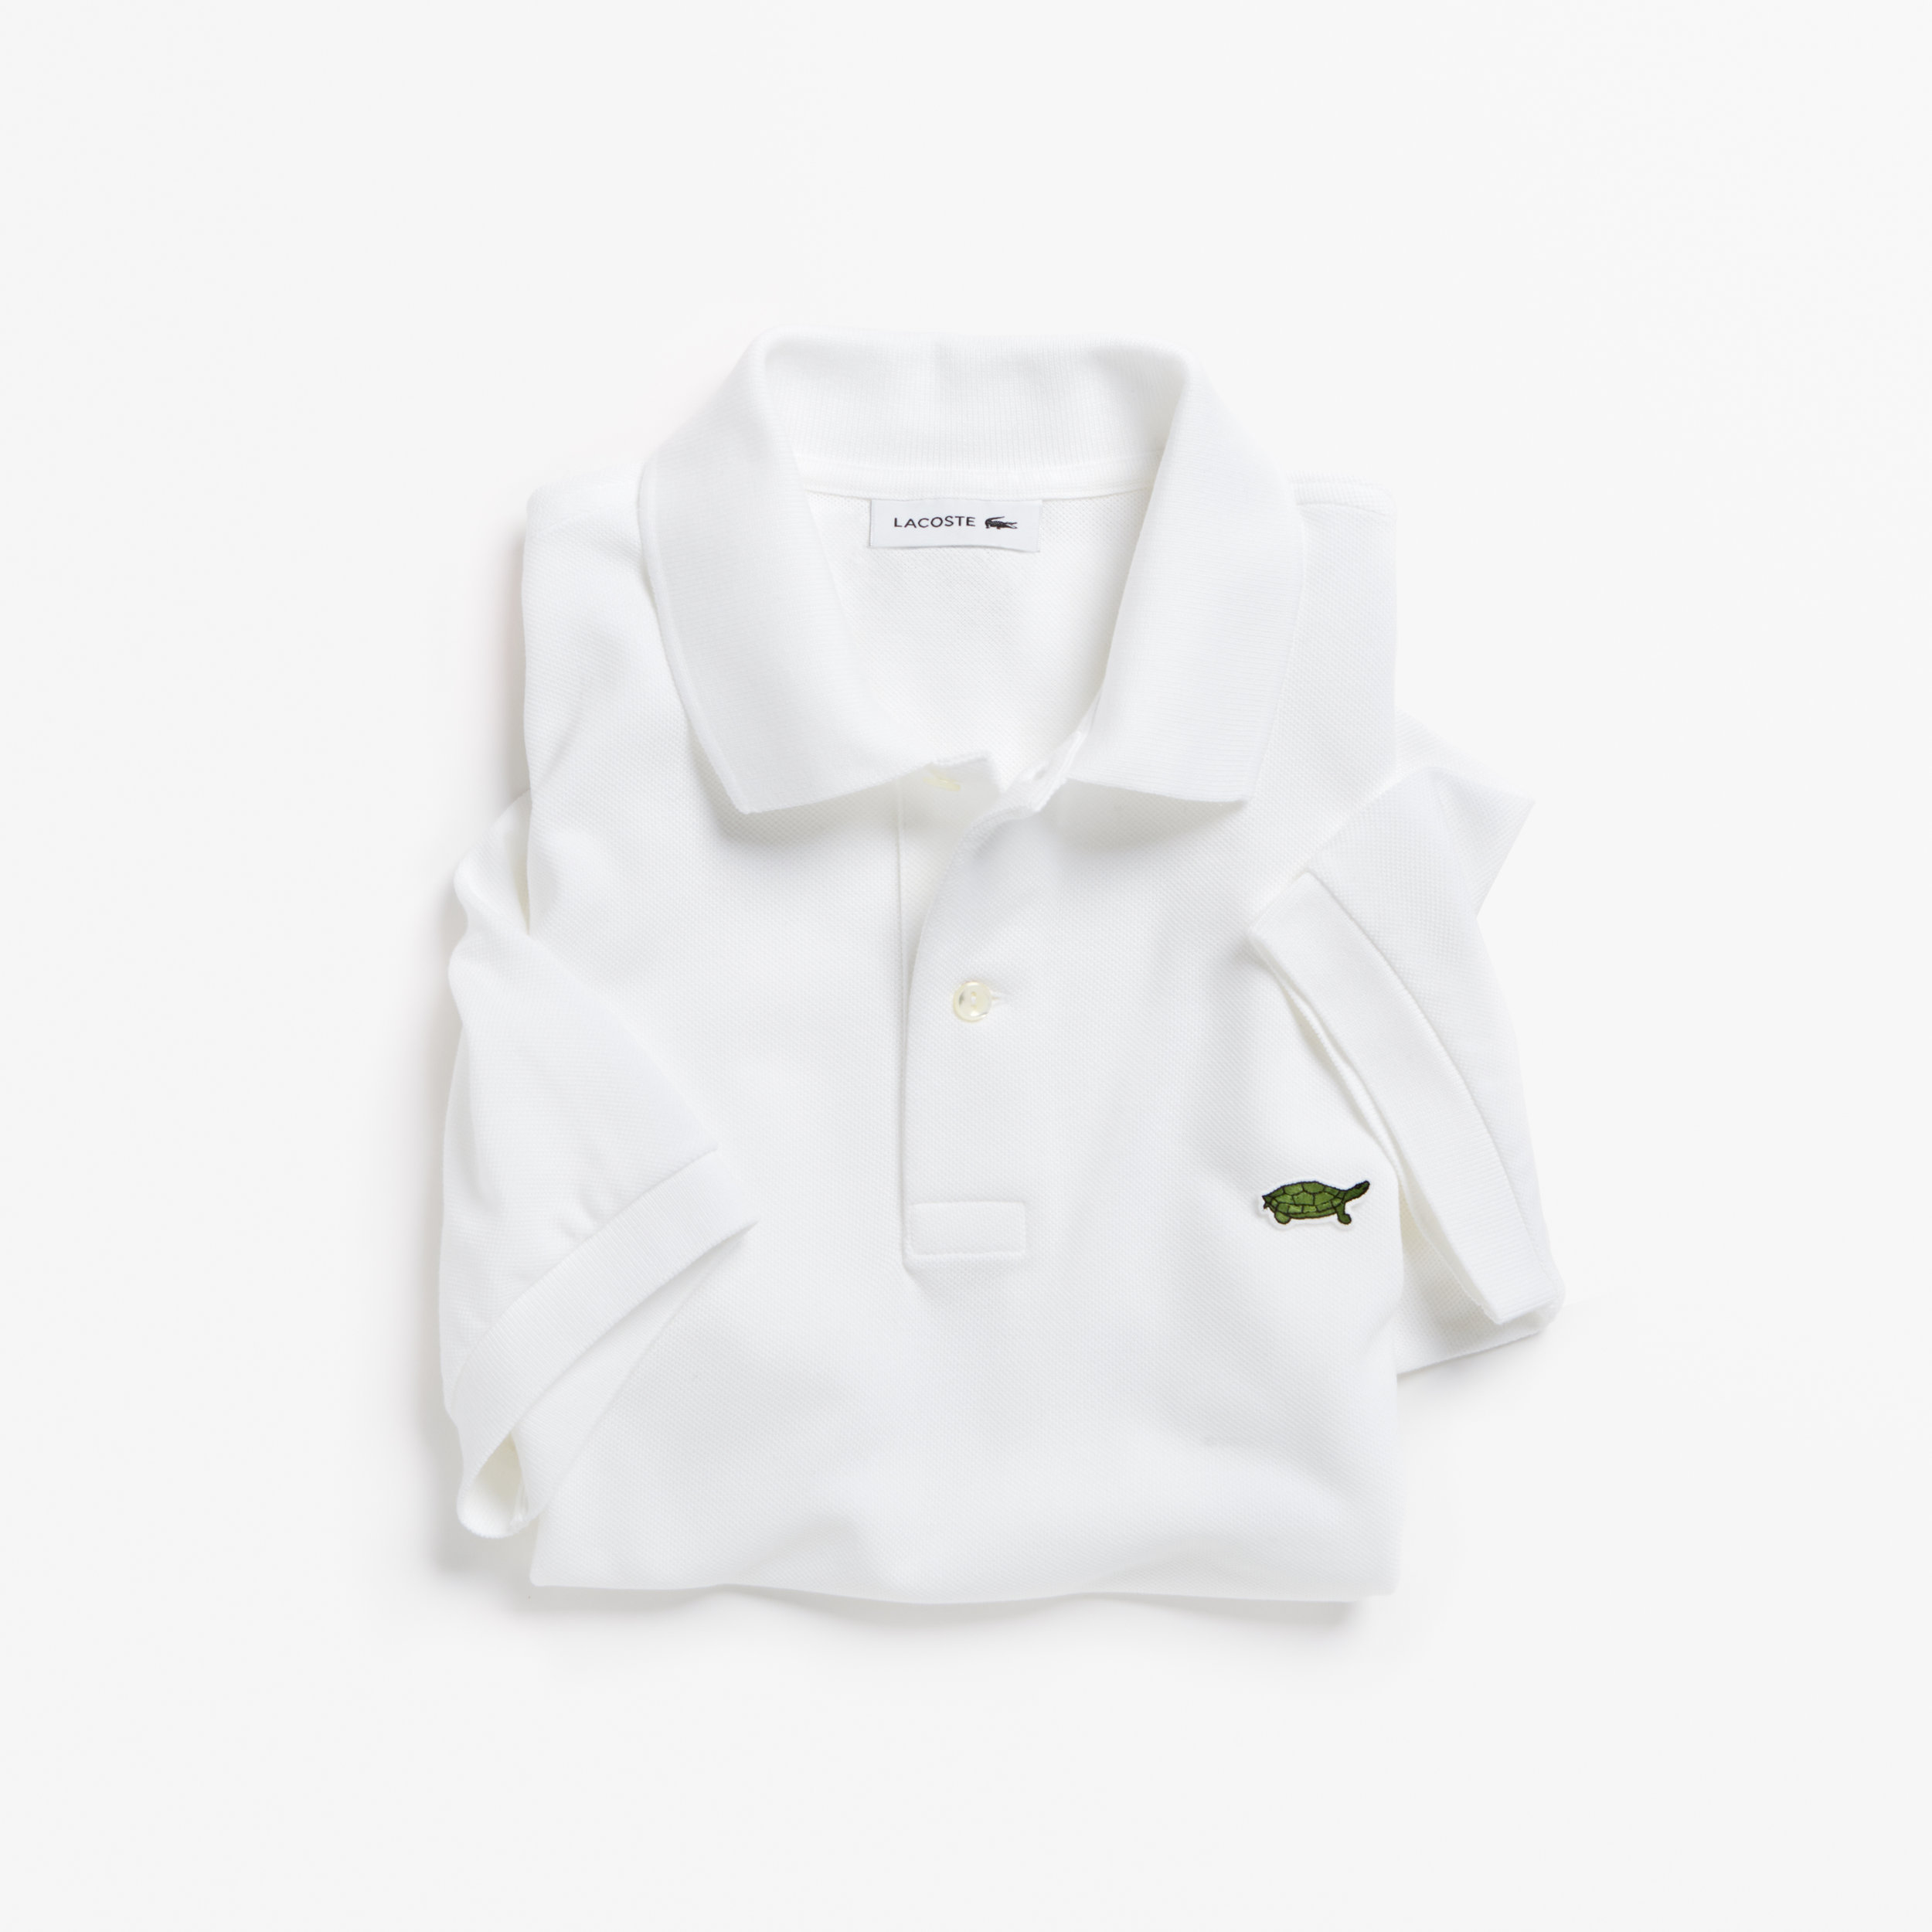 02. LACOSTE X SAVE OUR SPECIES (UICN)_THE BURMESE ROOFED TURTLE_PH4642.jpg